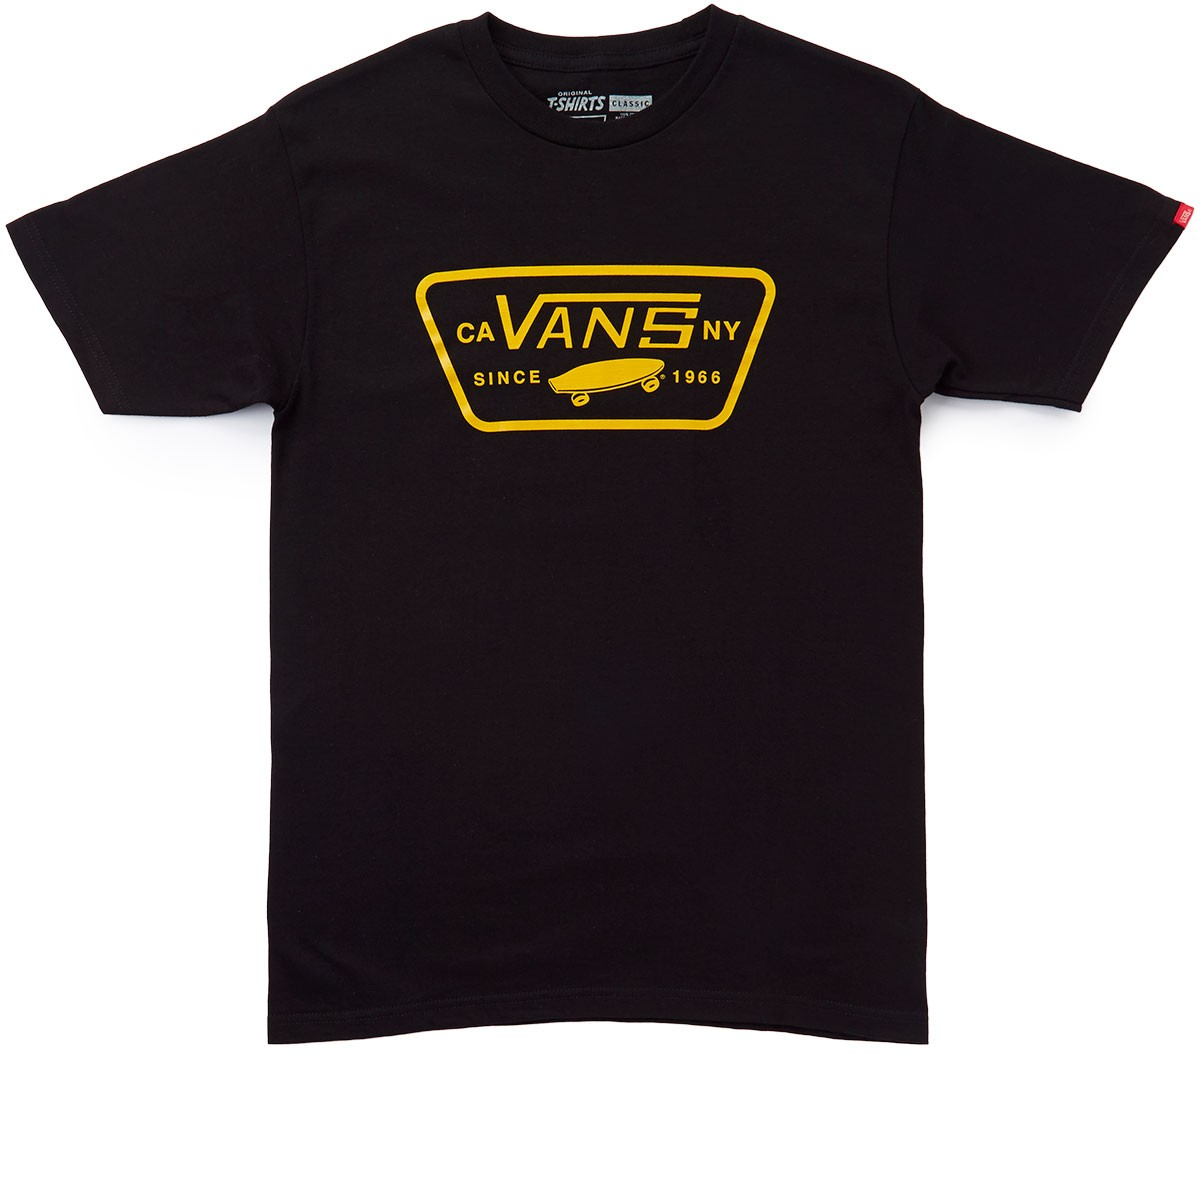 a9fb069c Vans Full Patch T-Shirt - Black/Cathay Spice